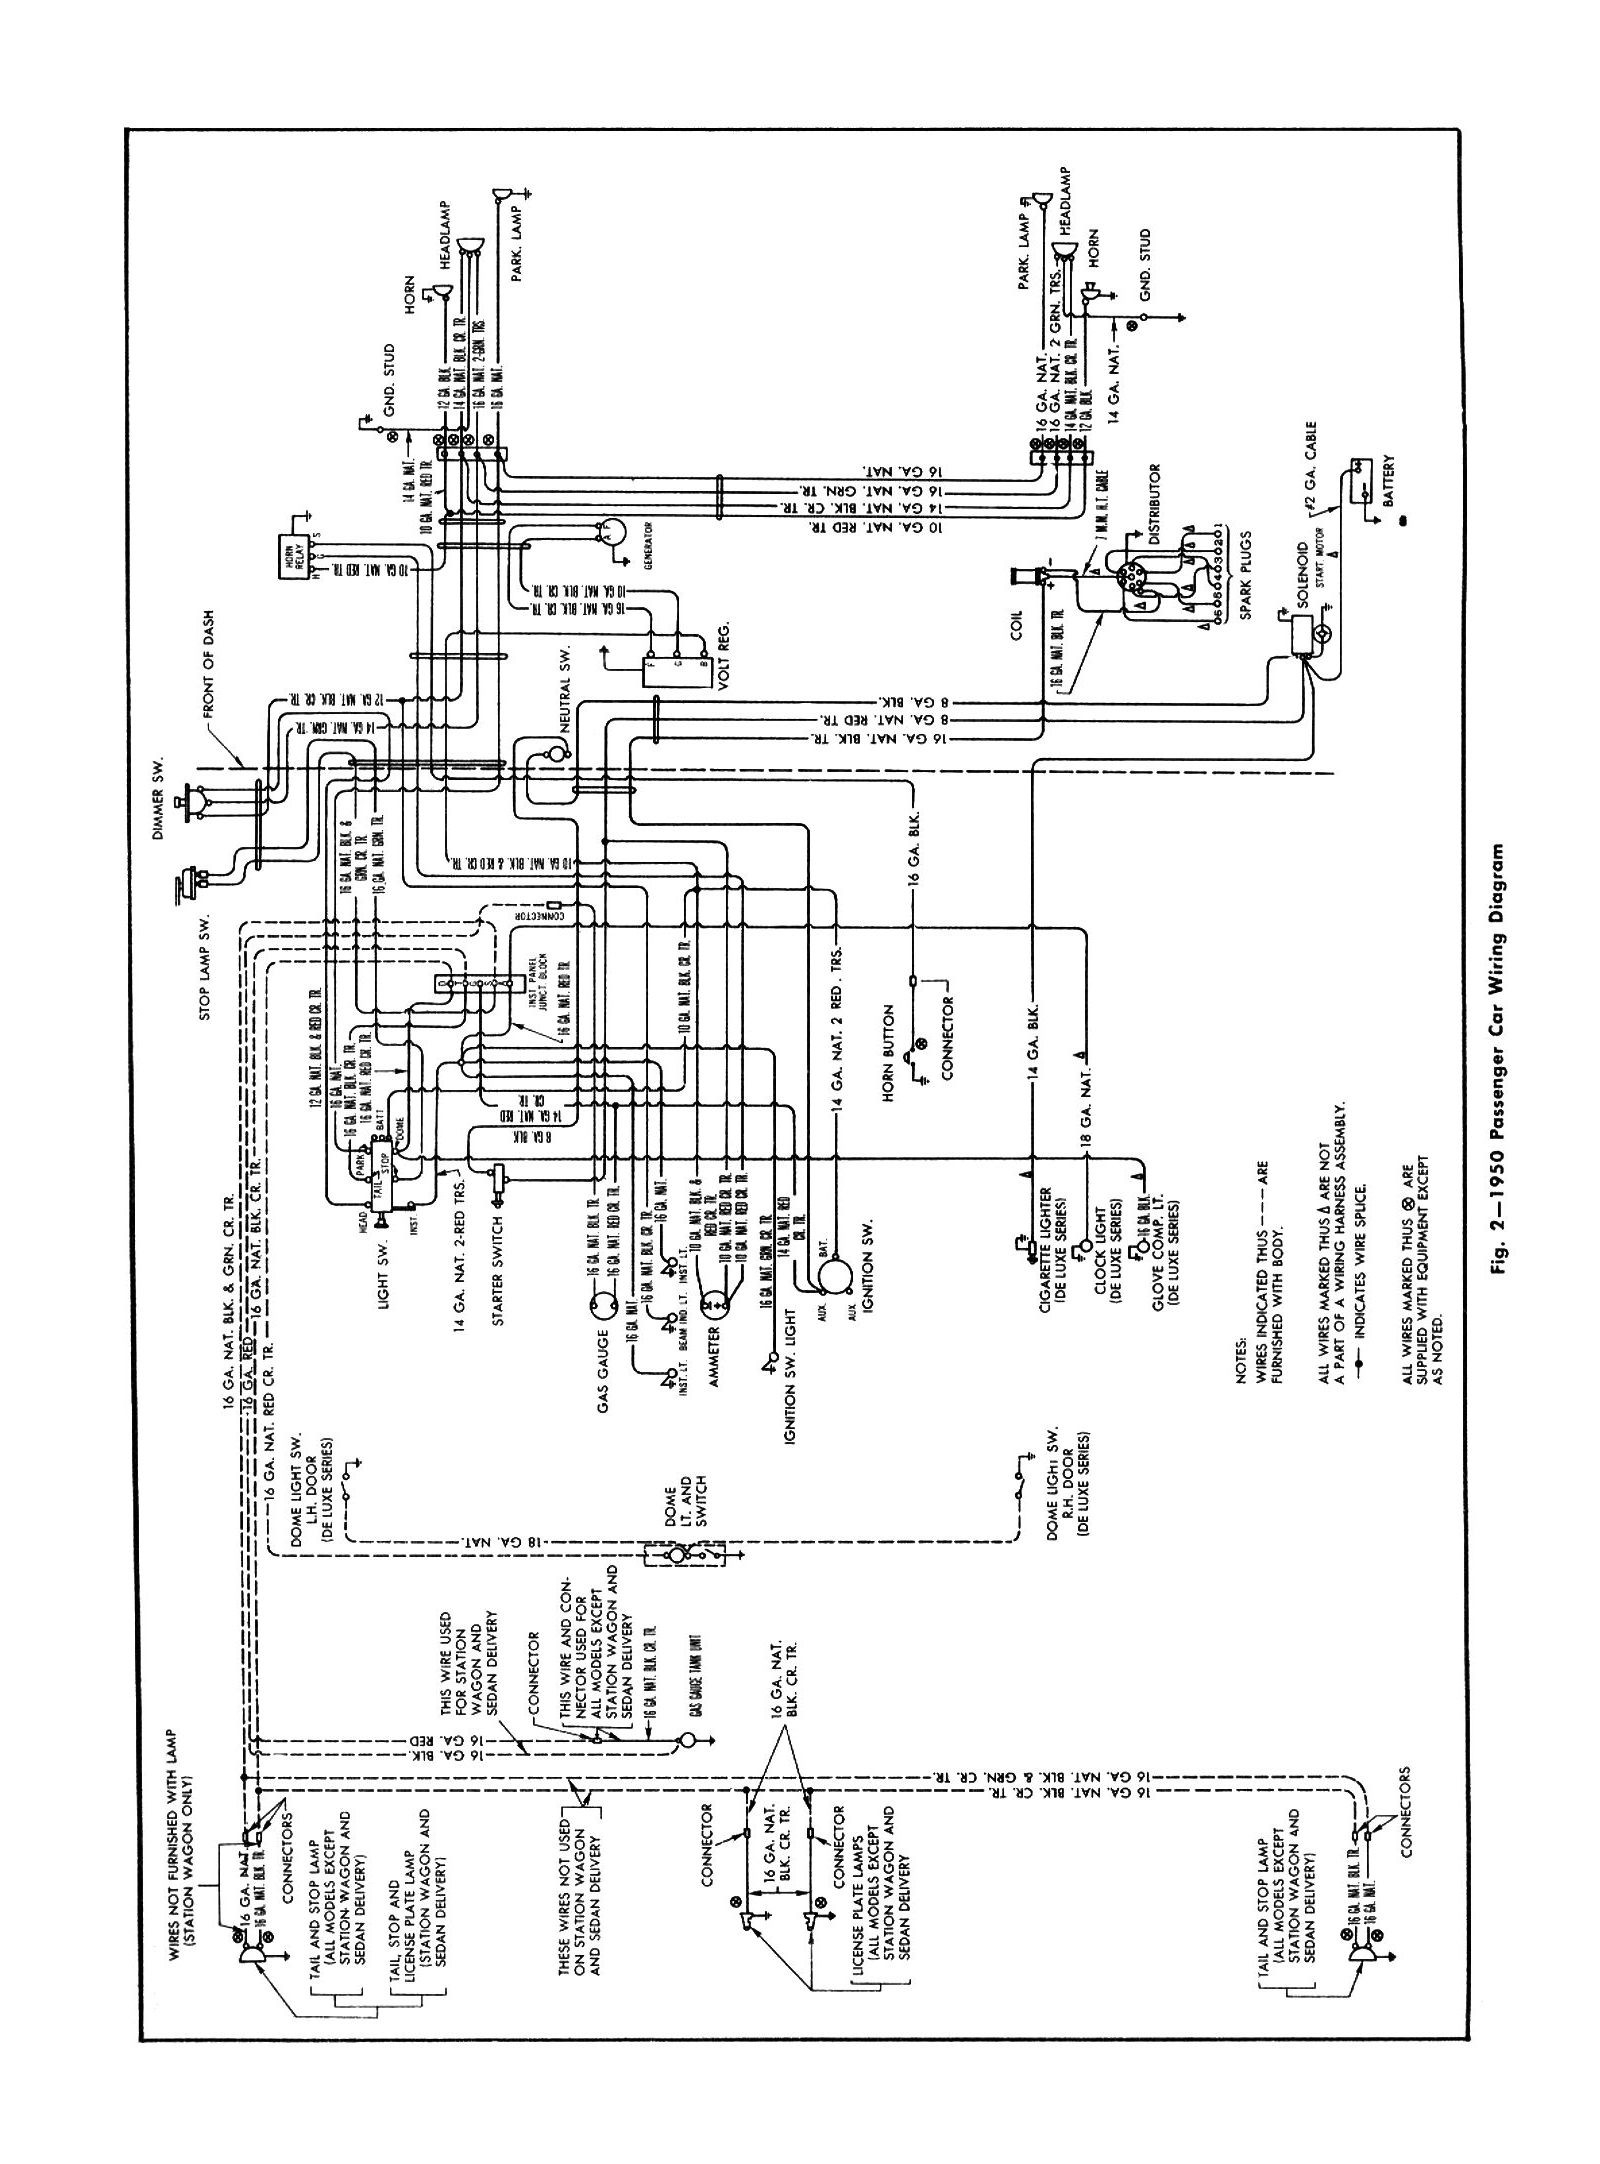 1979 ford truck wire diagram